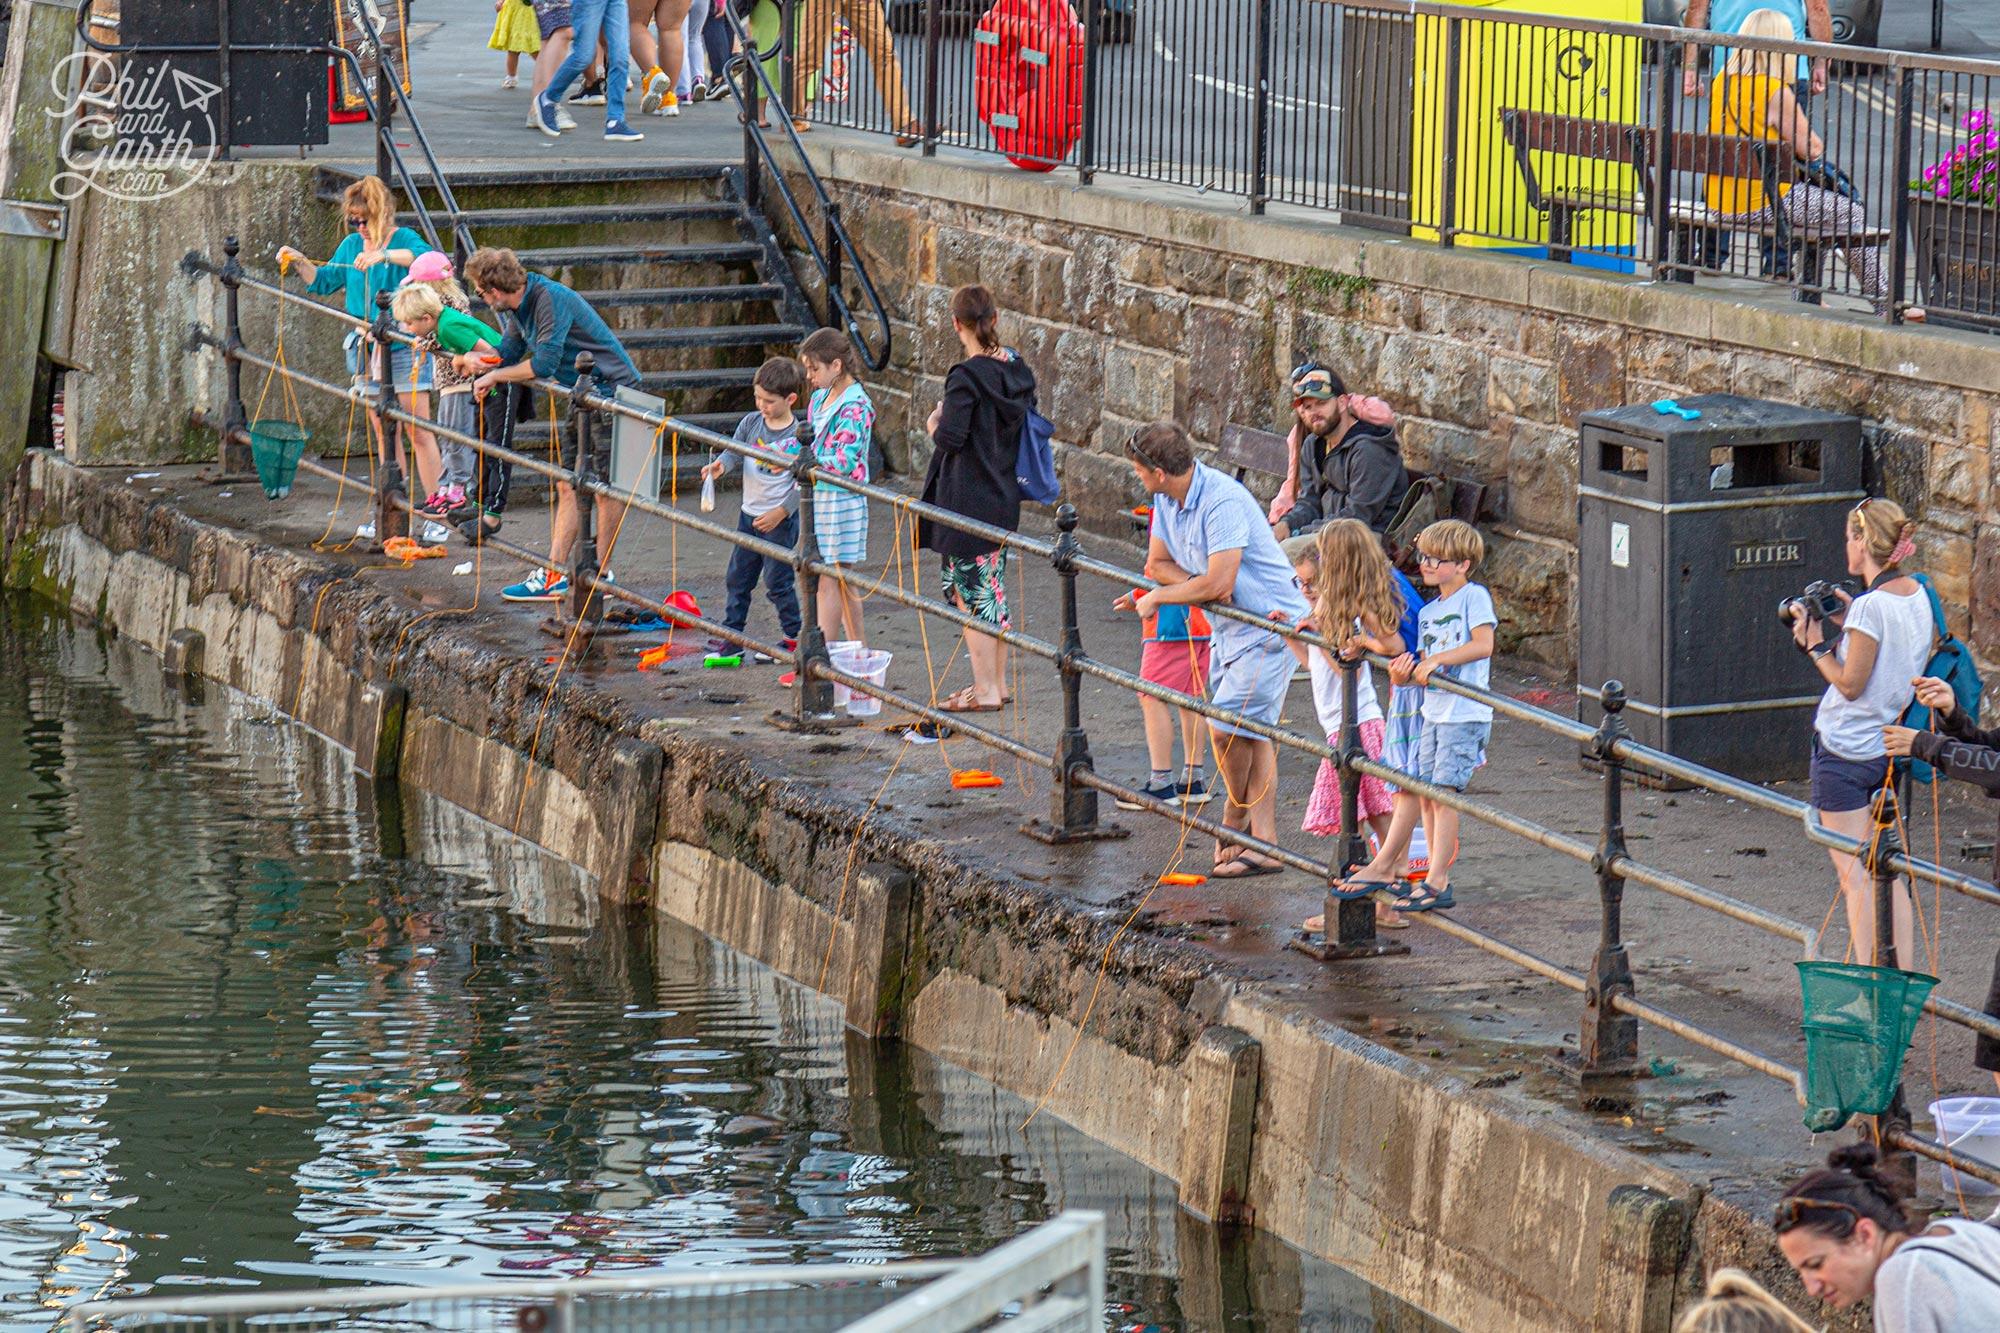 Crabbing in Whitby Harbour - a popular activity for families